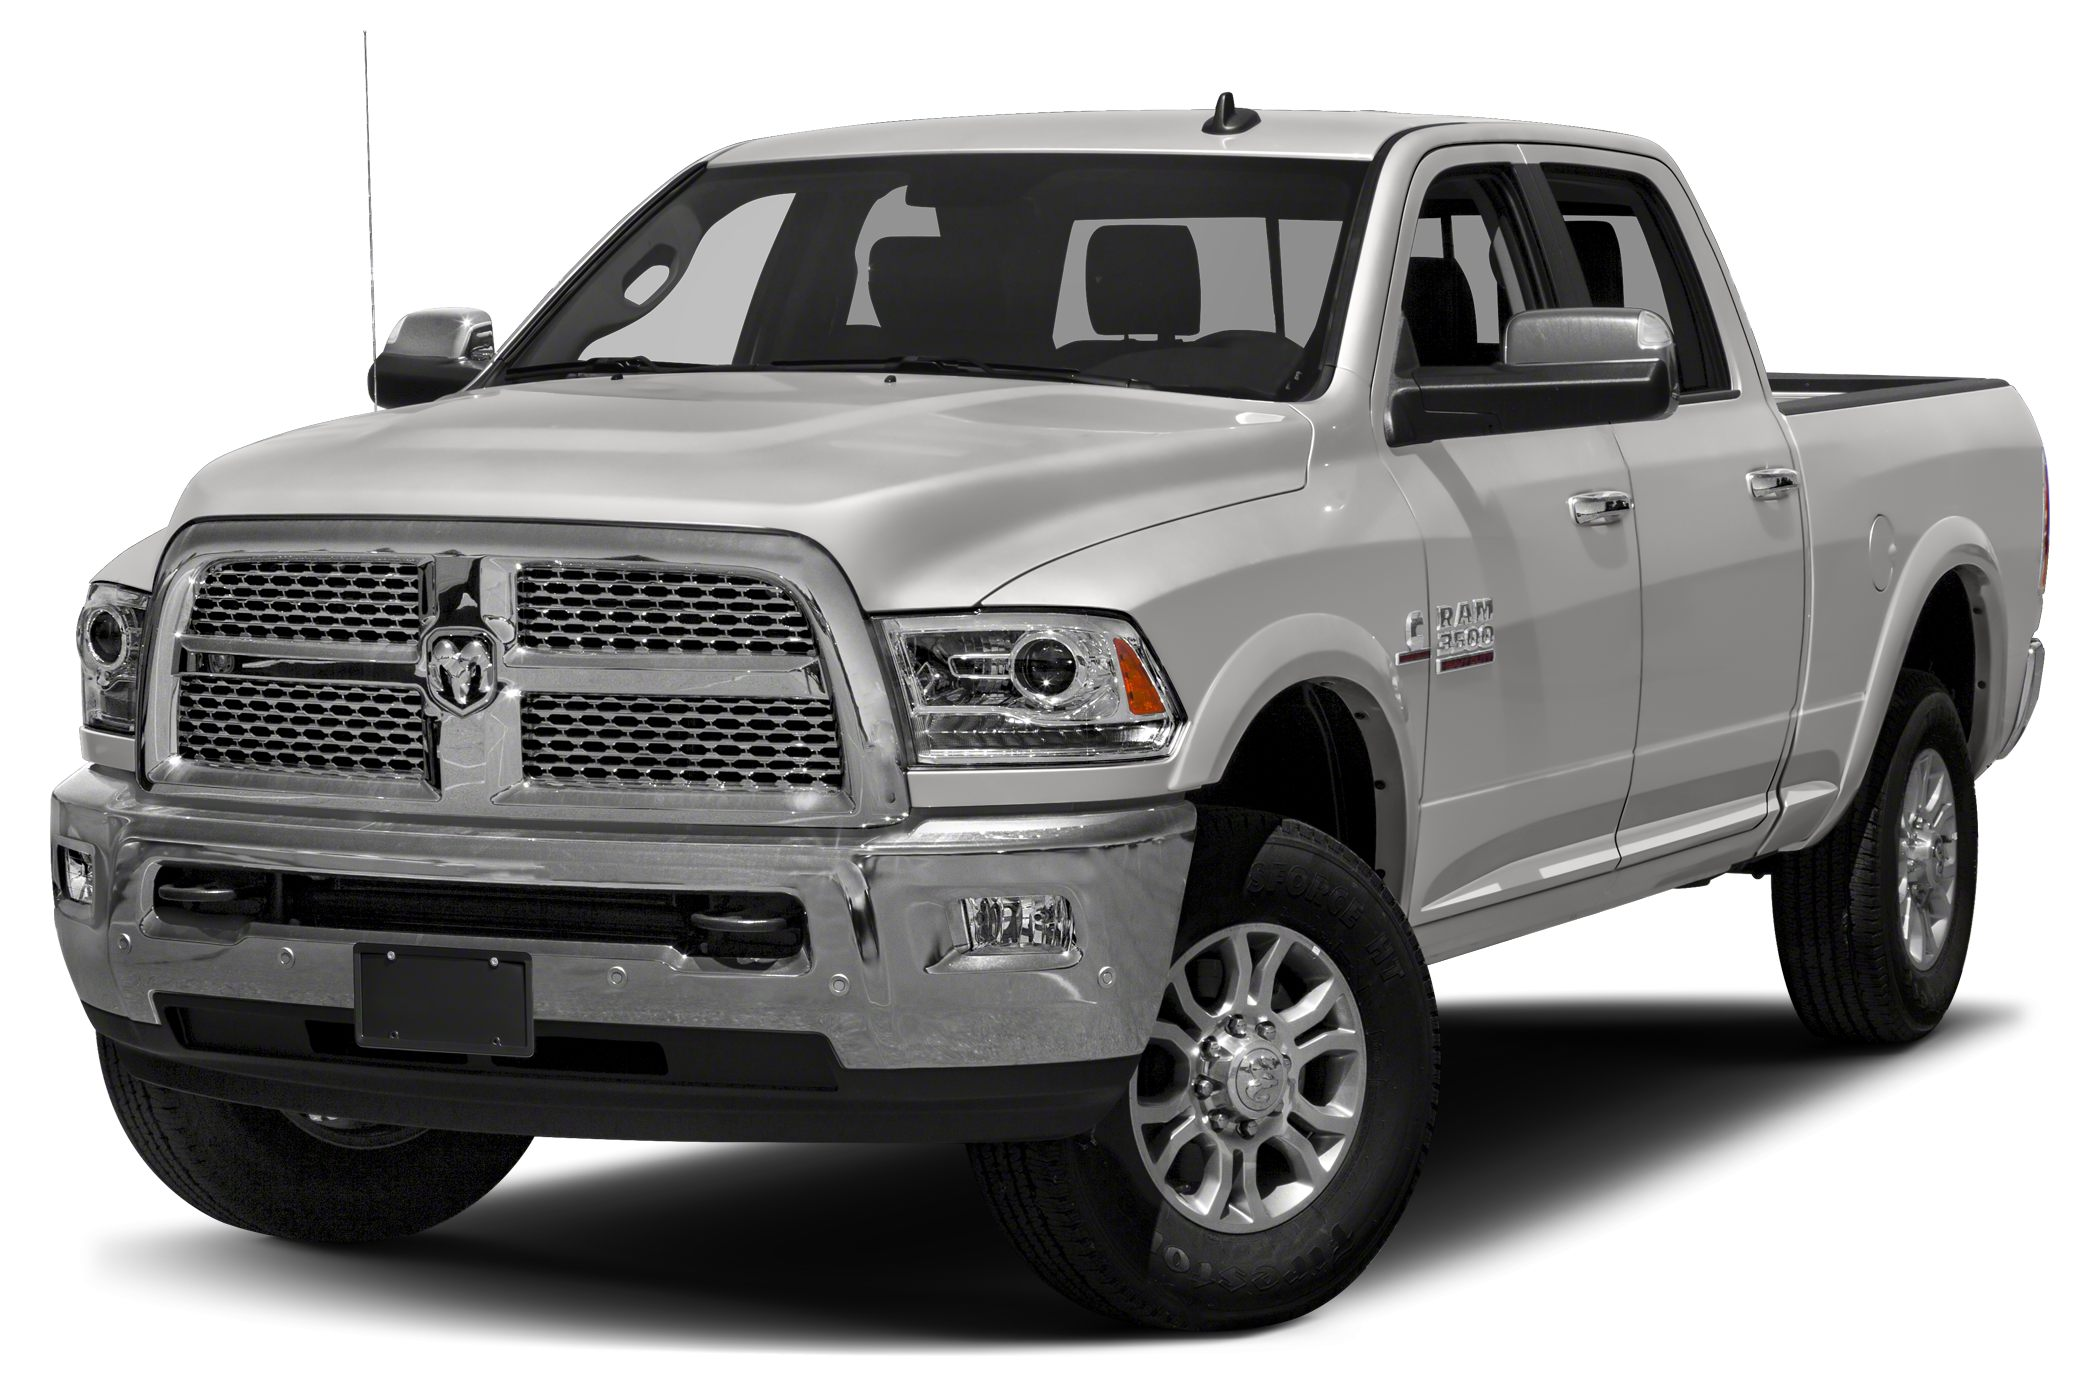 2016 Ram 3500 Laramie Longhorn 4x4 Crew Cab 149 5 In Wb Srw Pricing And Options